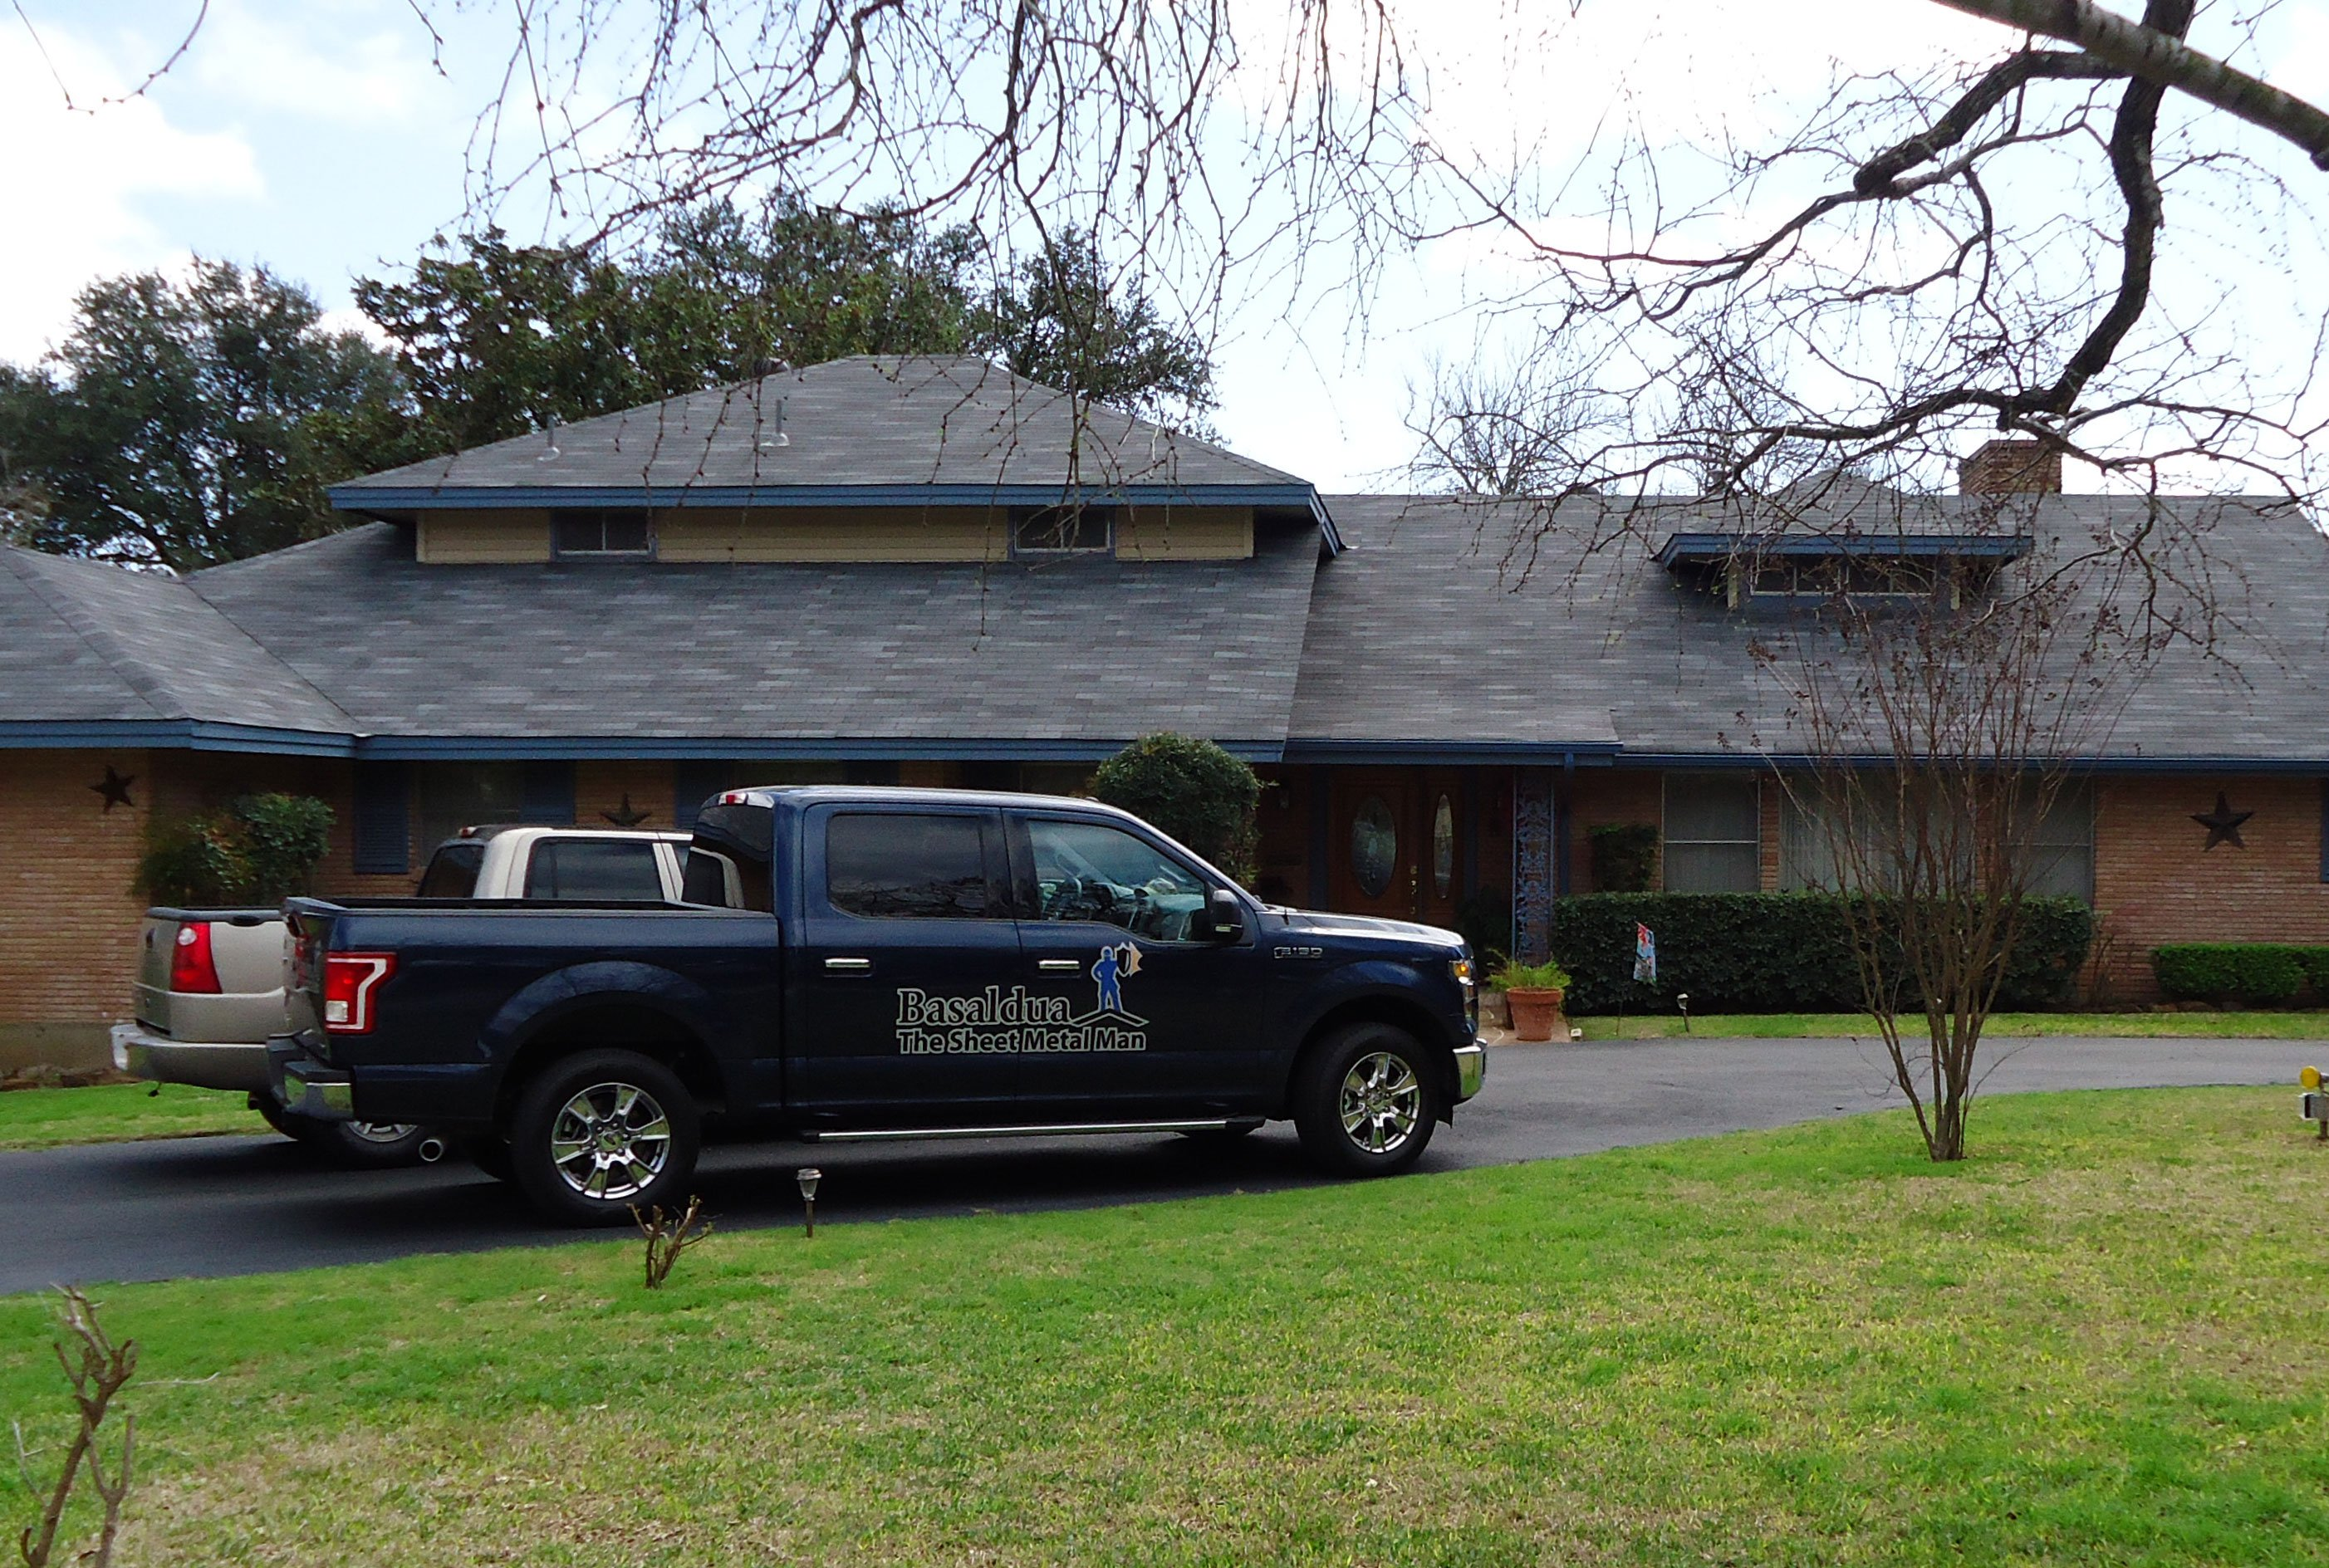 To Learn More About Our Metal And Composite Shingle Roofing Services Or To  Request A FREE Written Estimate, Call Ray At (210) 912 3256 Today!